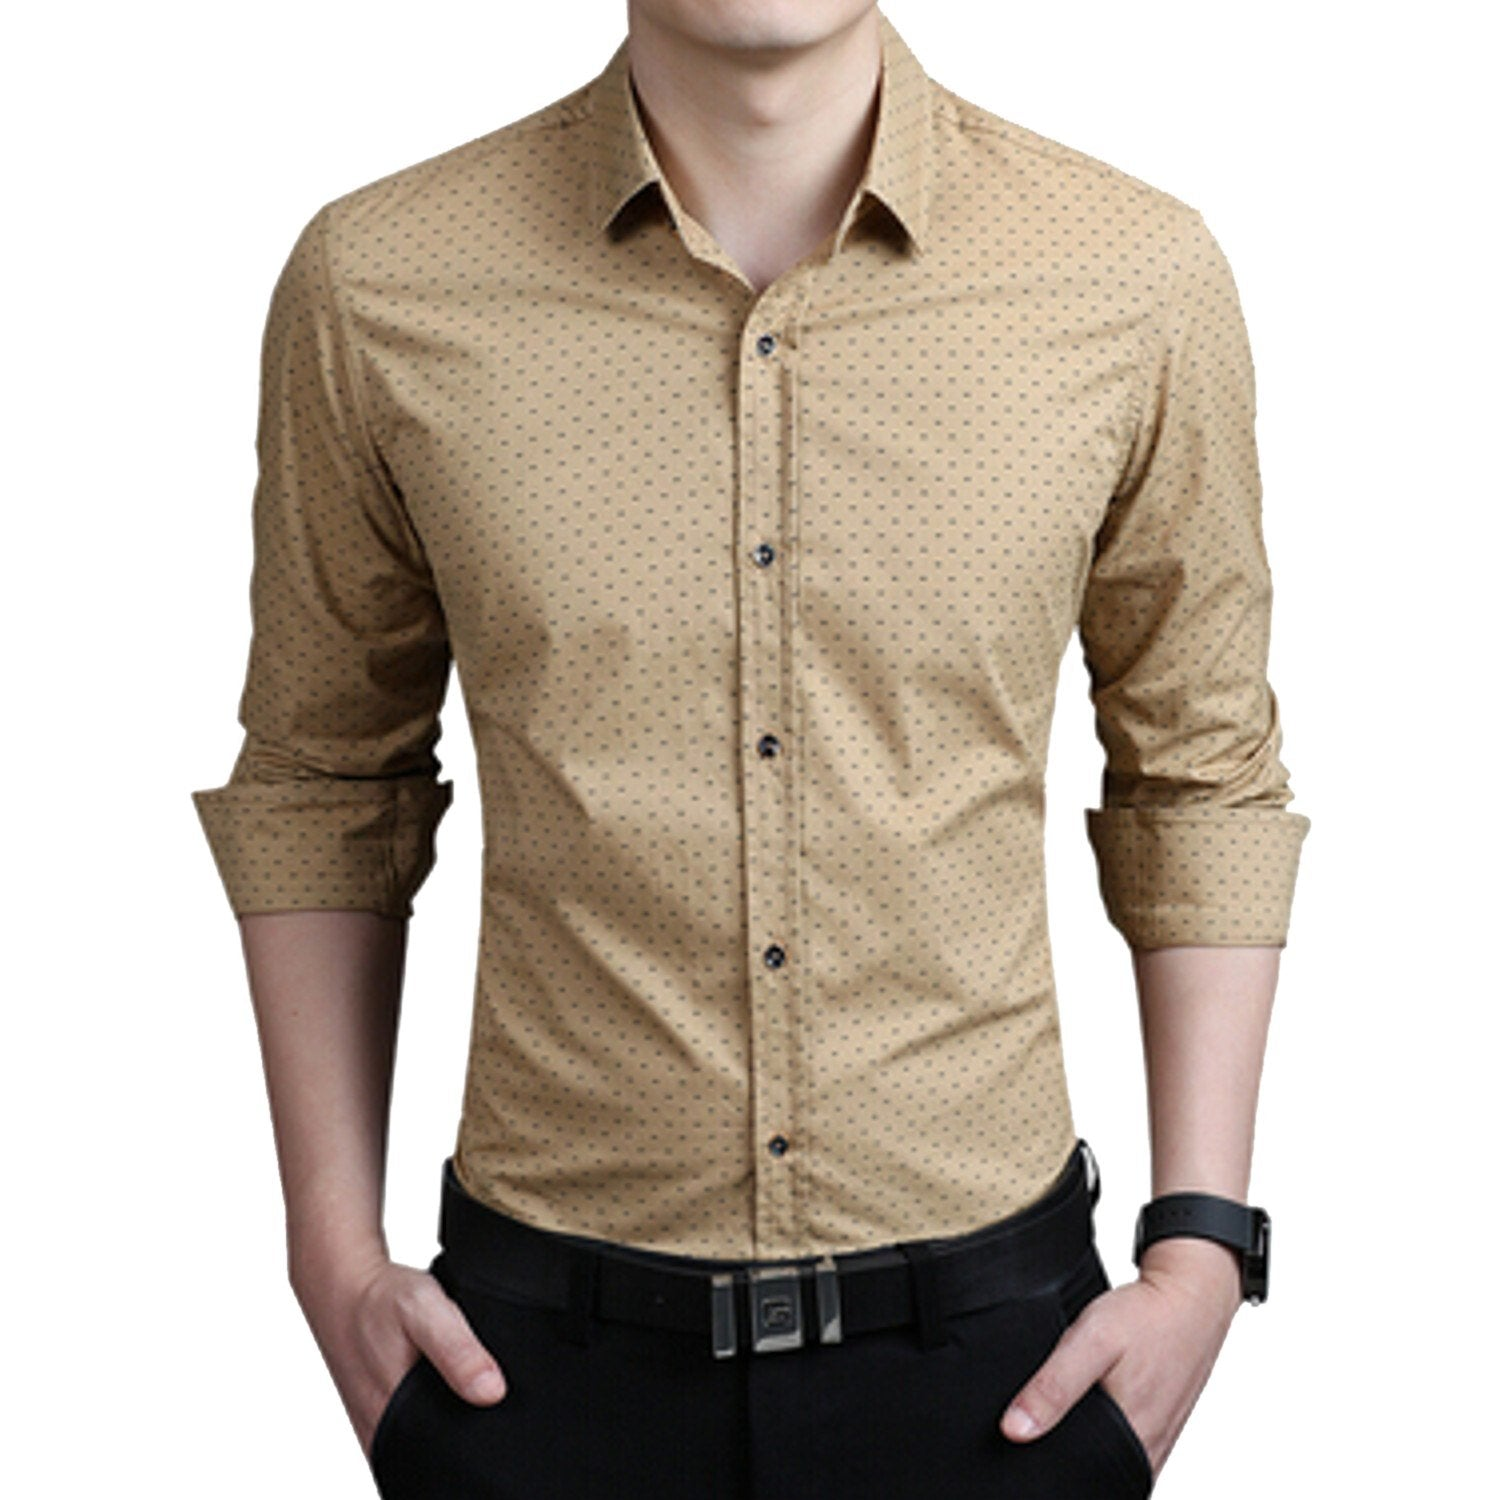 52e38fc71 ... Combo of 3 Men's Shirt with Splash Printed with long sleeves ...